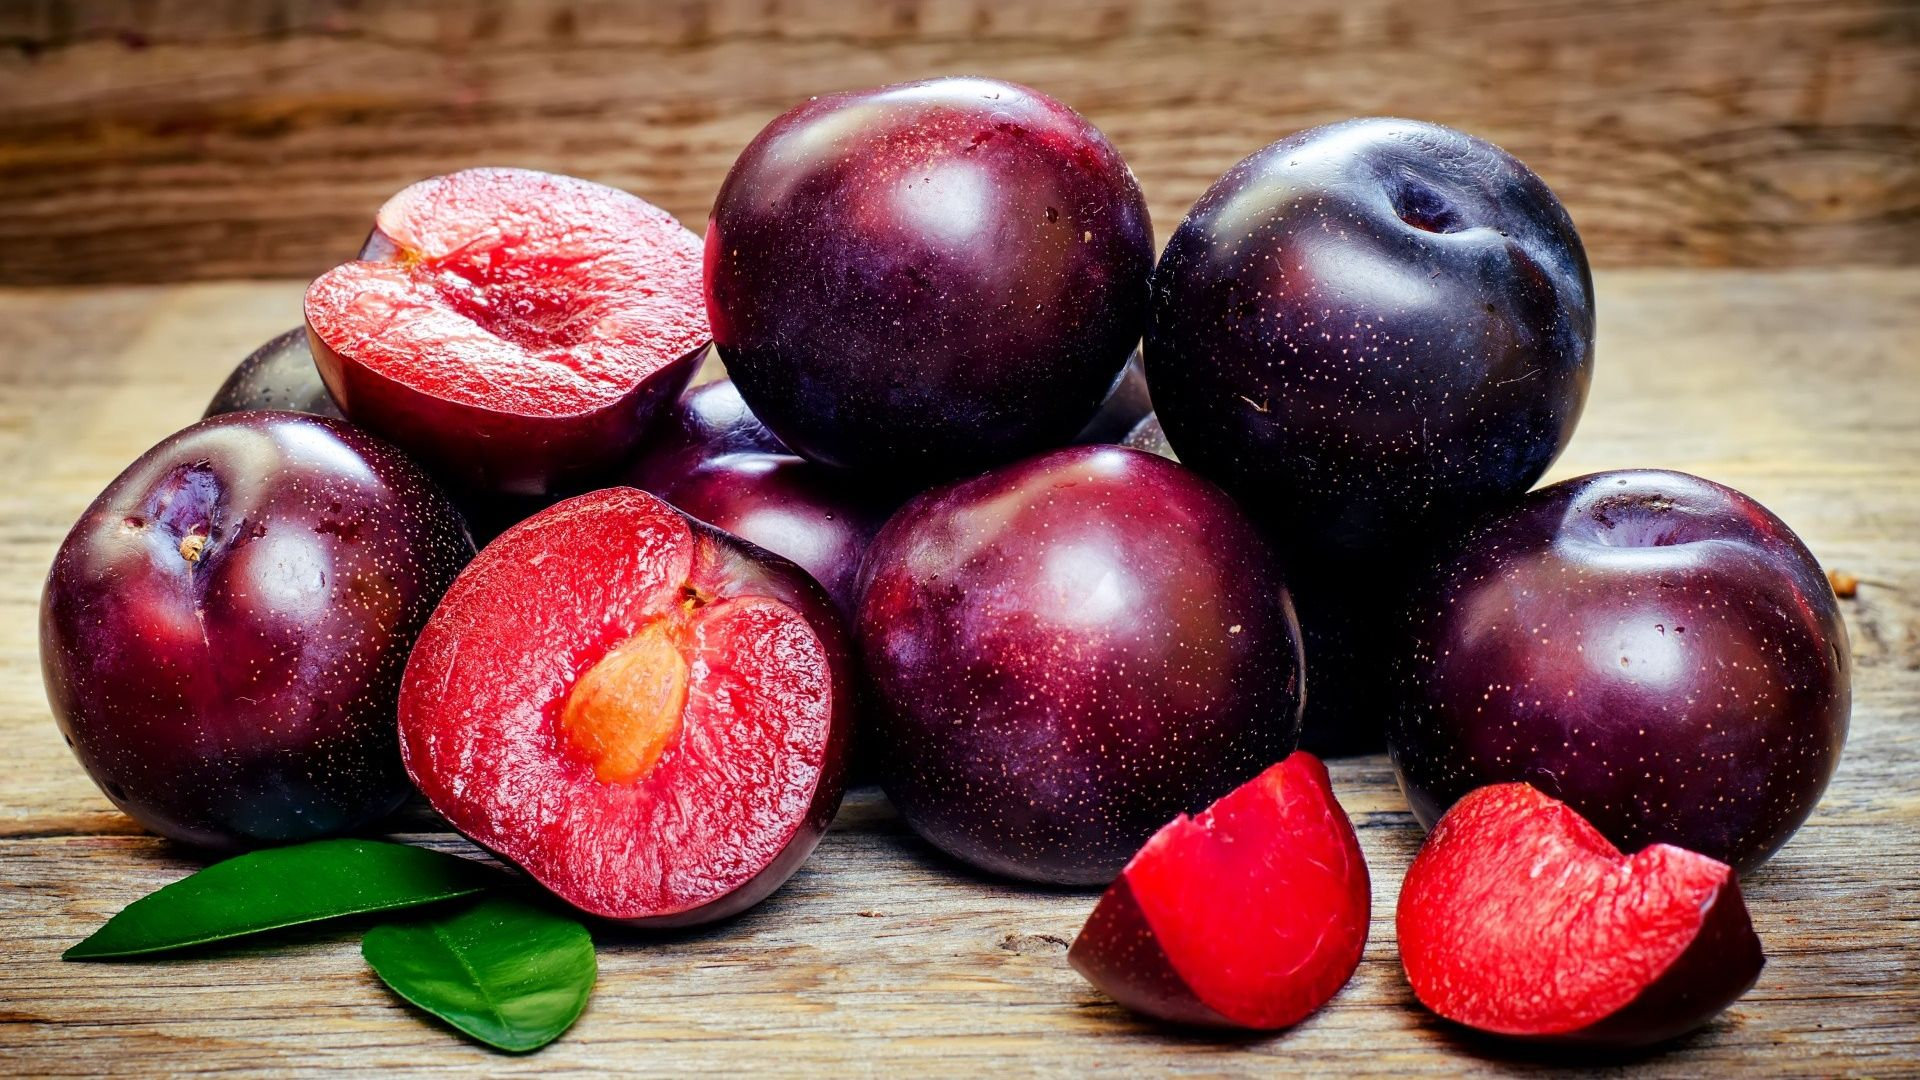 food,plum,plumb,yield,plum tree,fruits,nutrient,hd